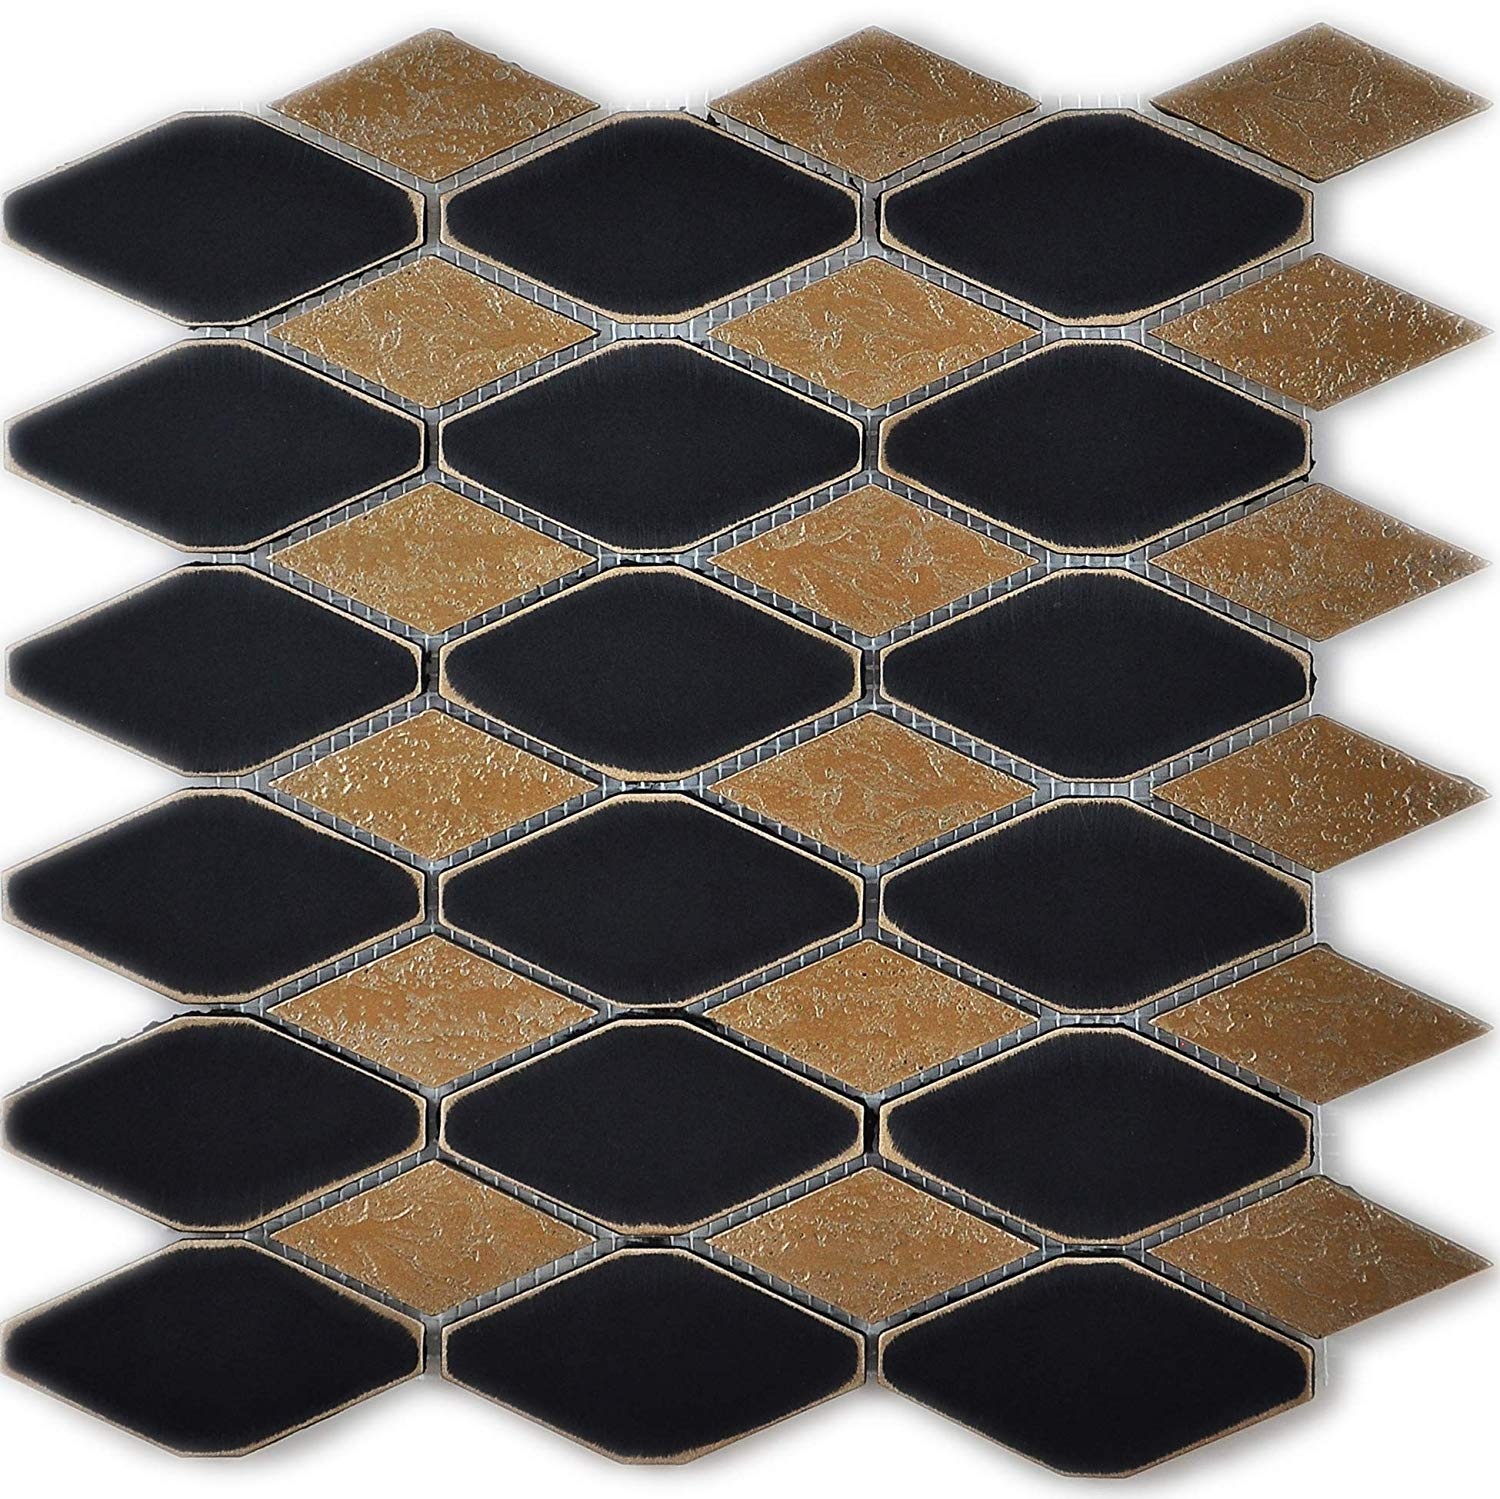 Vogue Tile Metal Octagon Black Gold Mosaic Tile for Kitchen Backsplashes, Wall, Bathroom Tile - Free Shipping